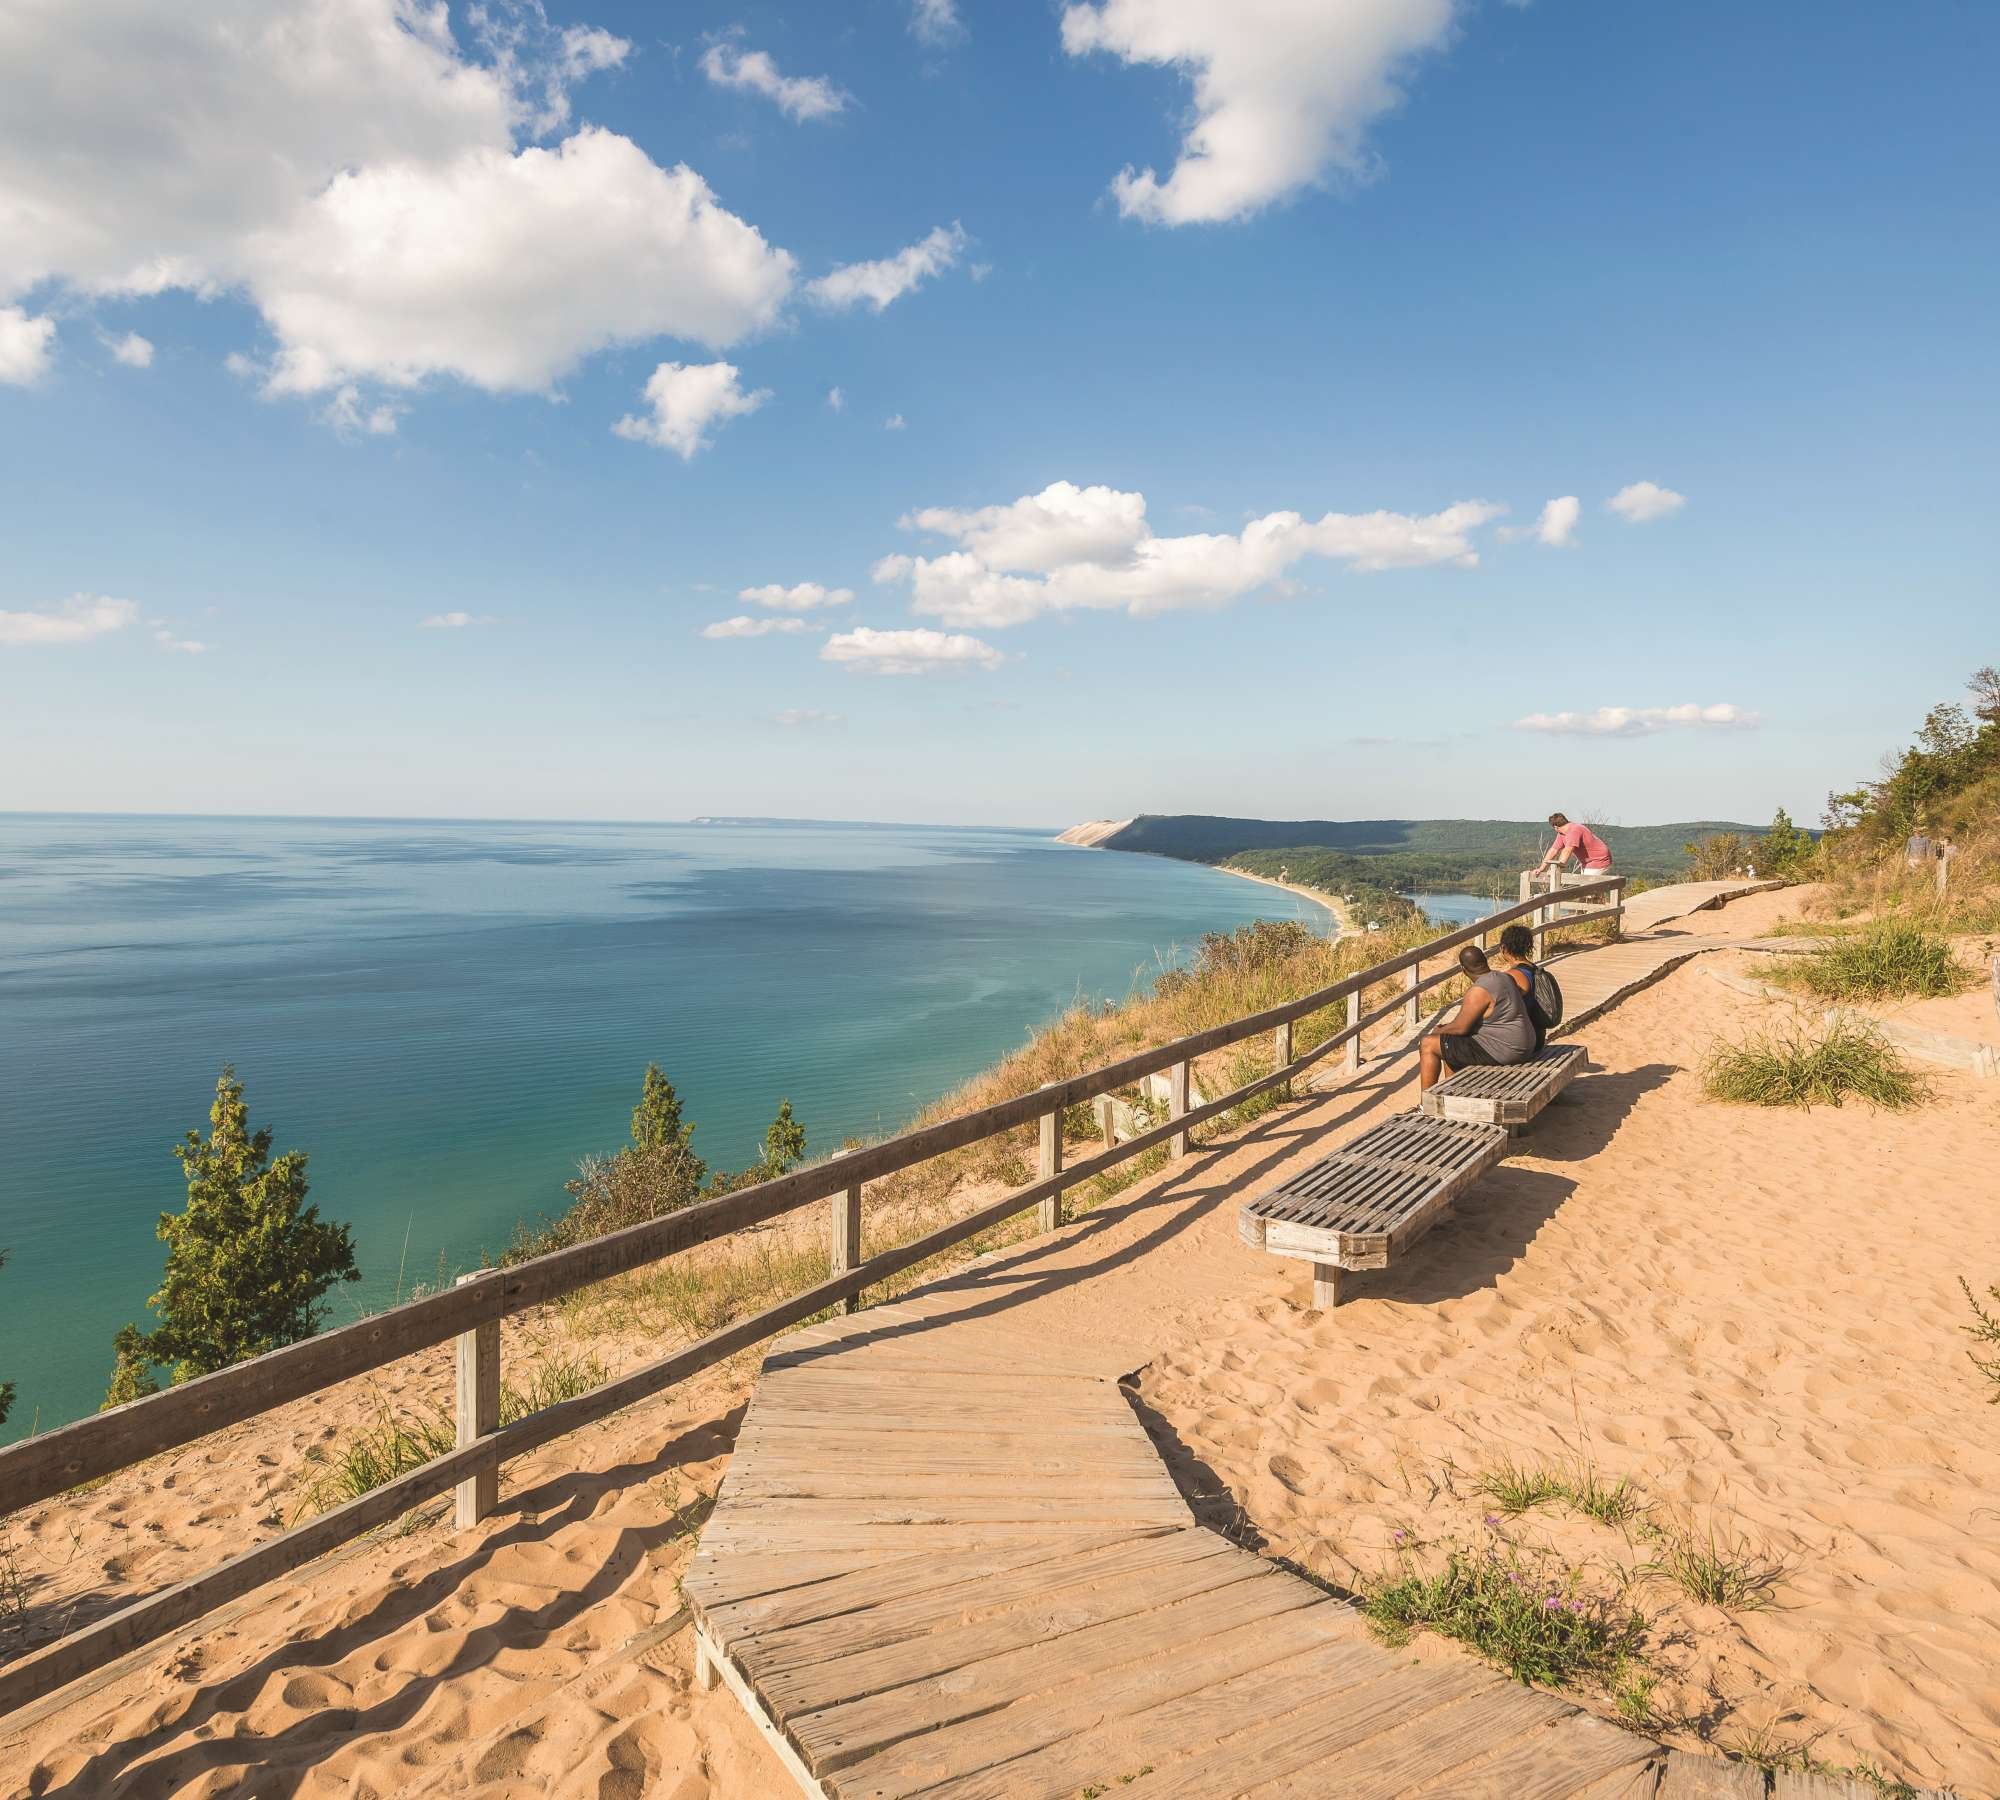 Traverse City Coastline with visitors on benches